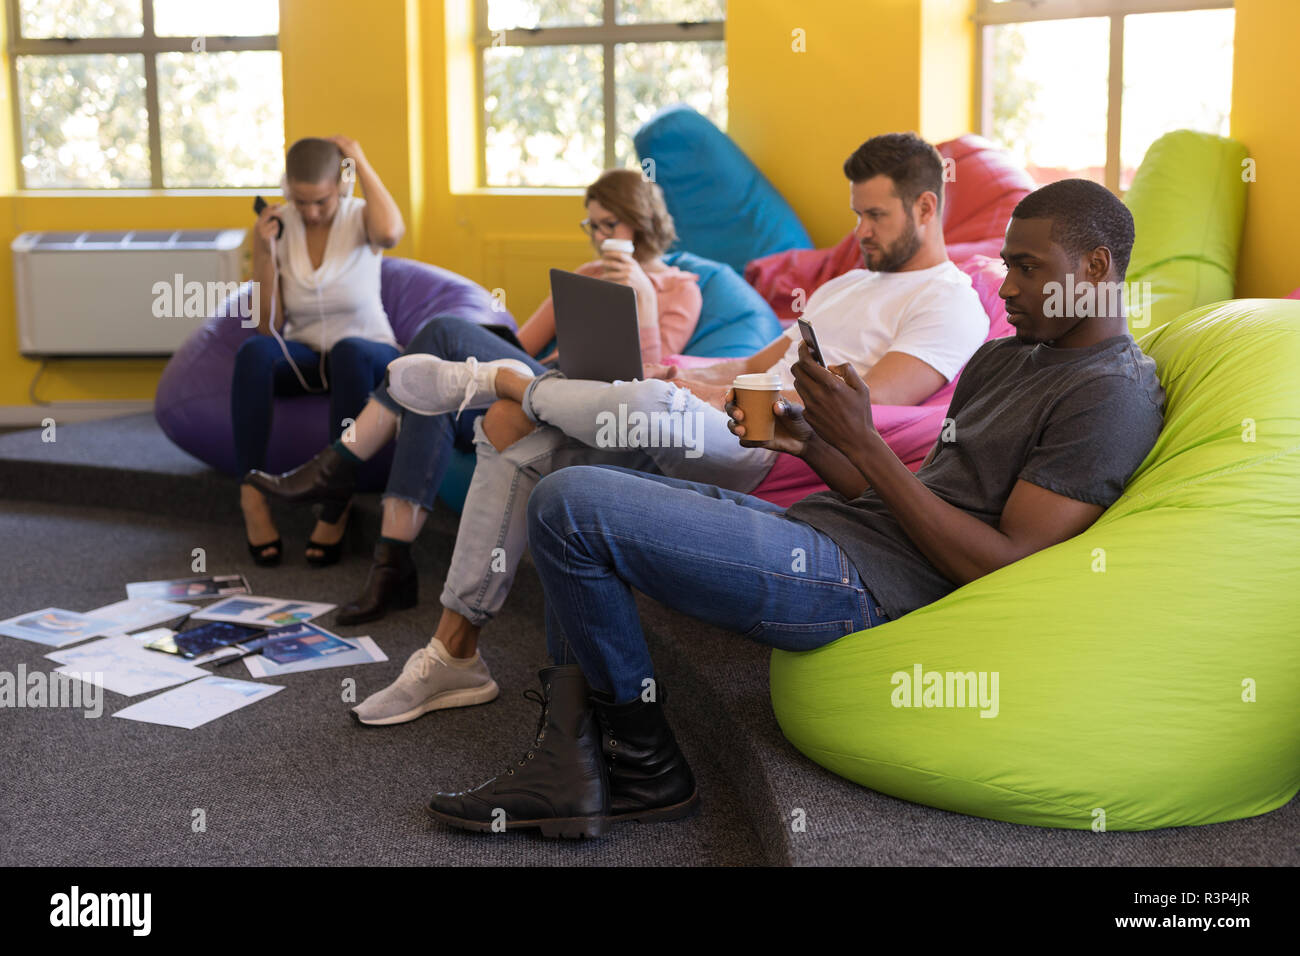 Business executives working while sitting on beanbag - Stock Image